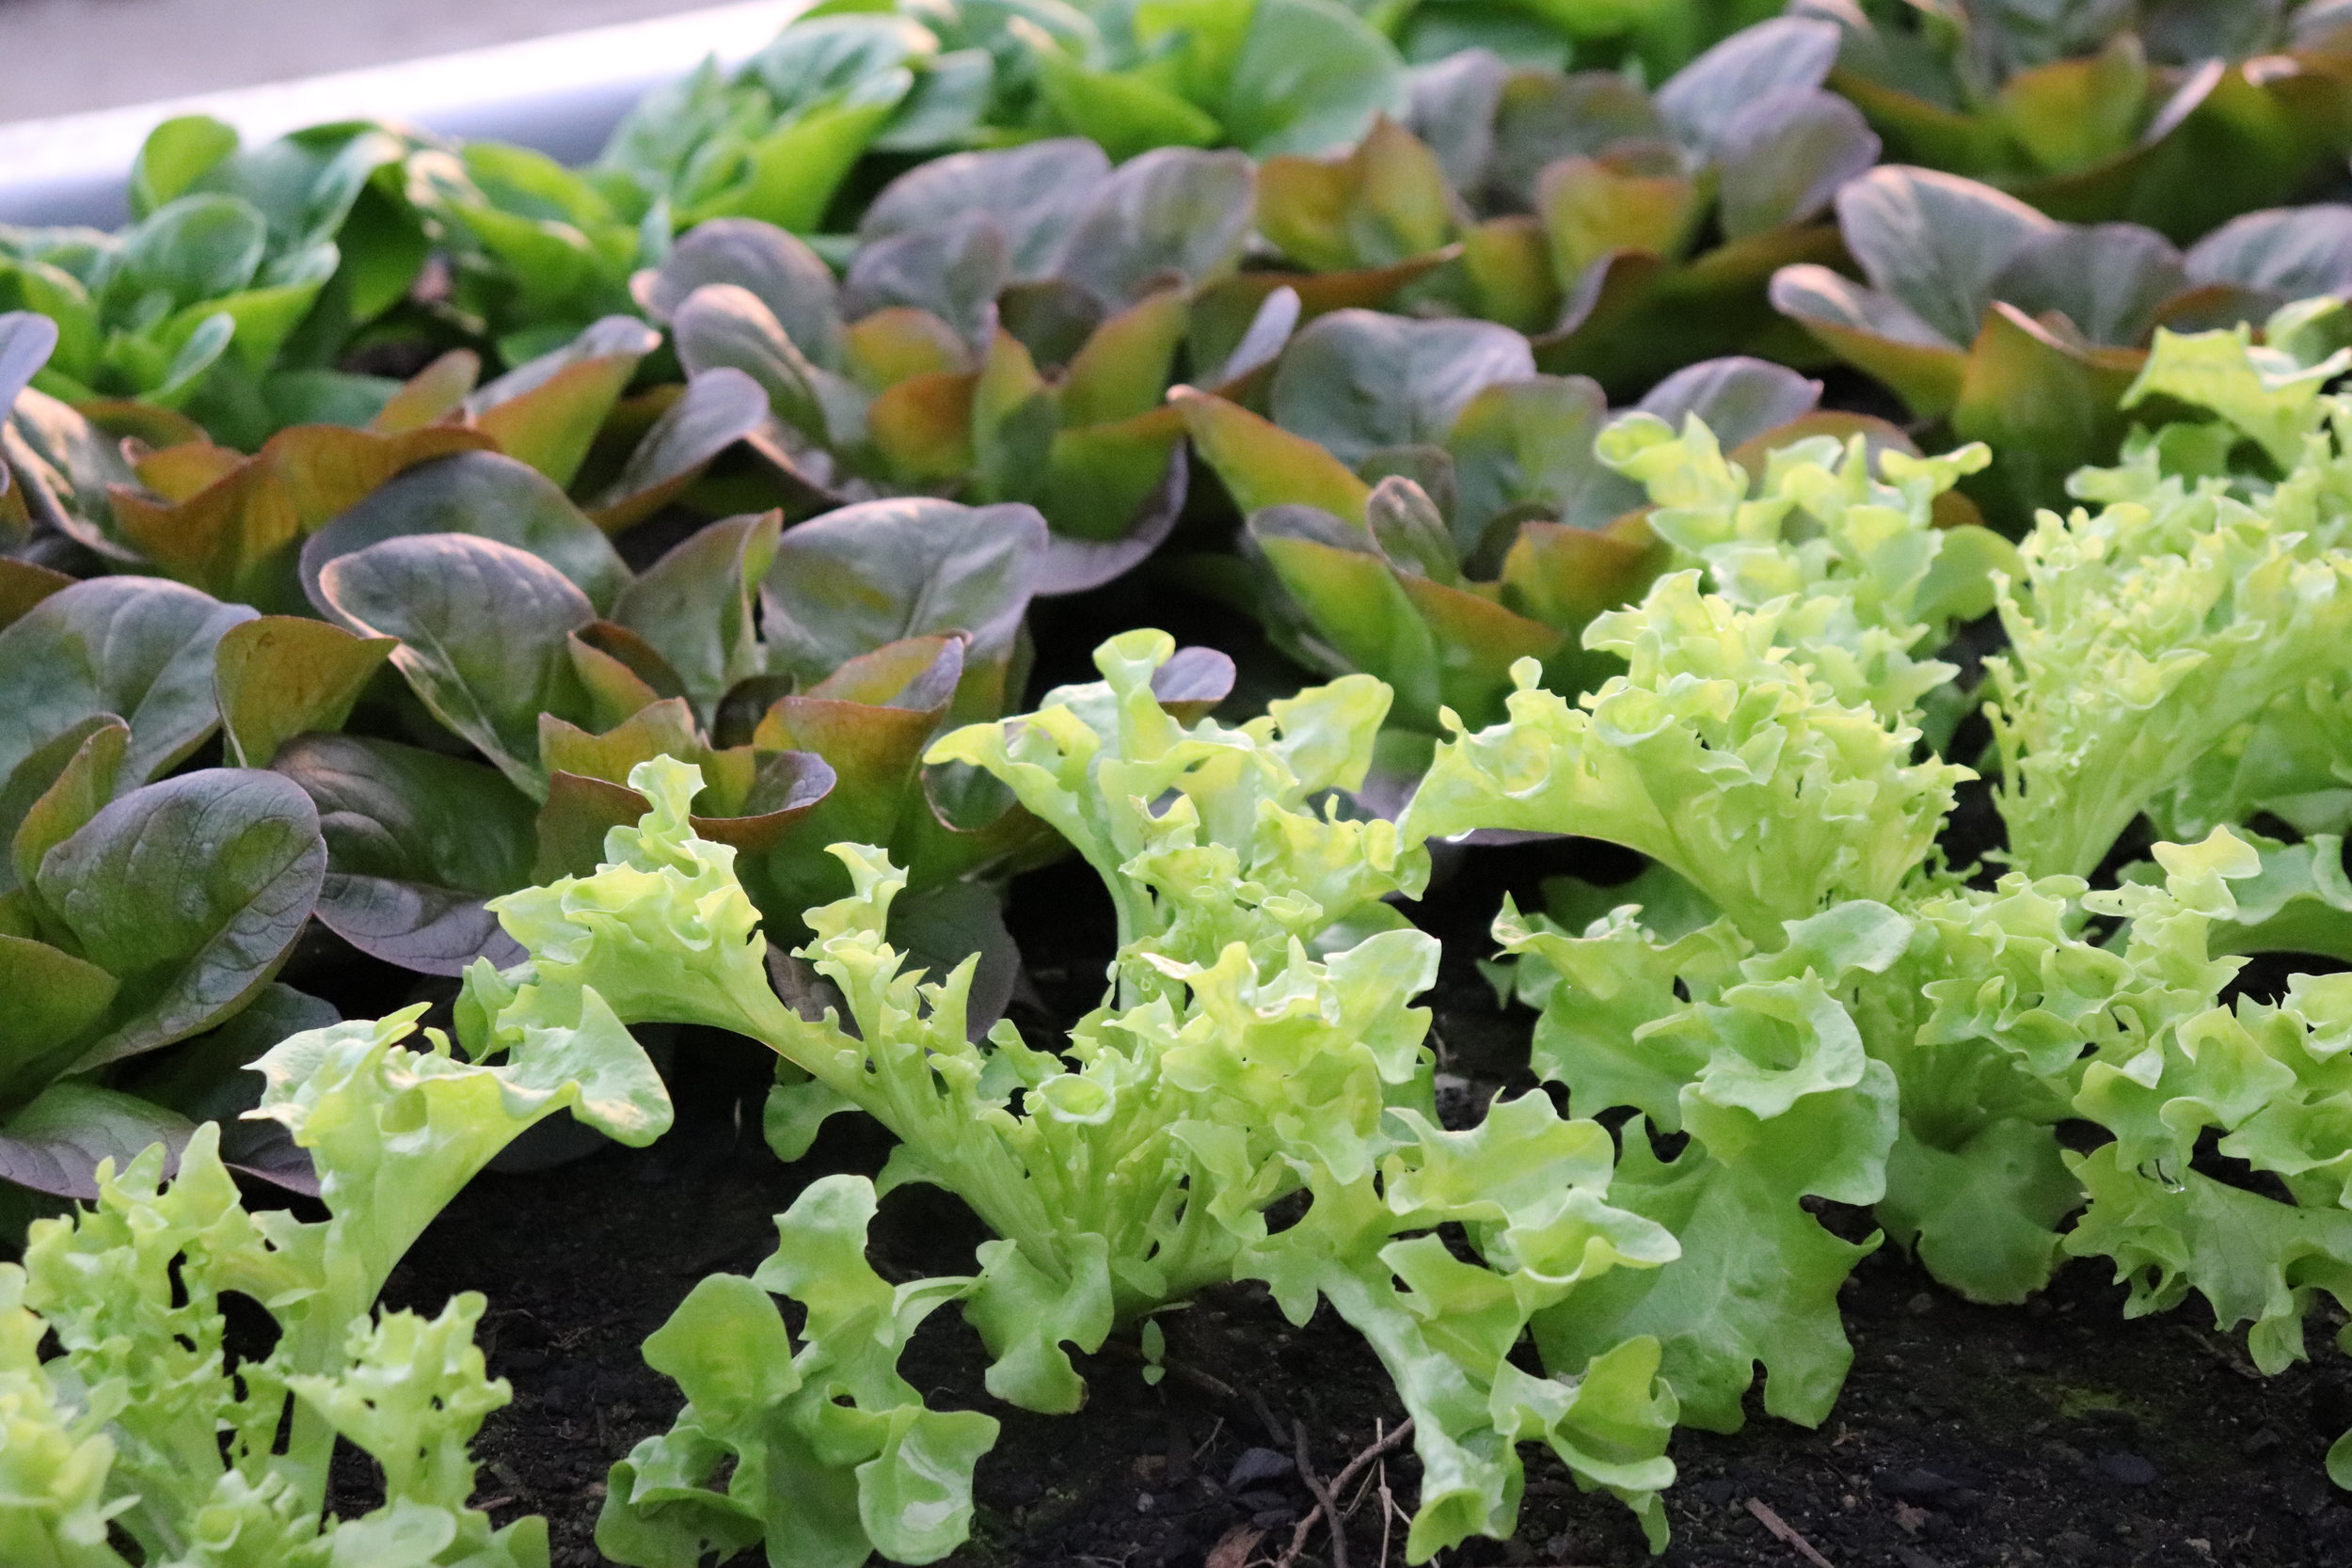 The freshest greenhouse salad greens